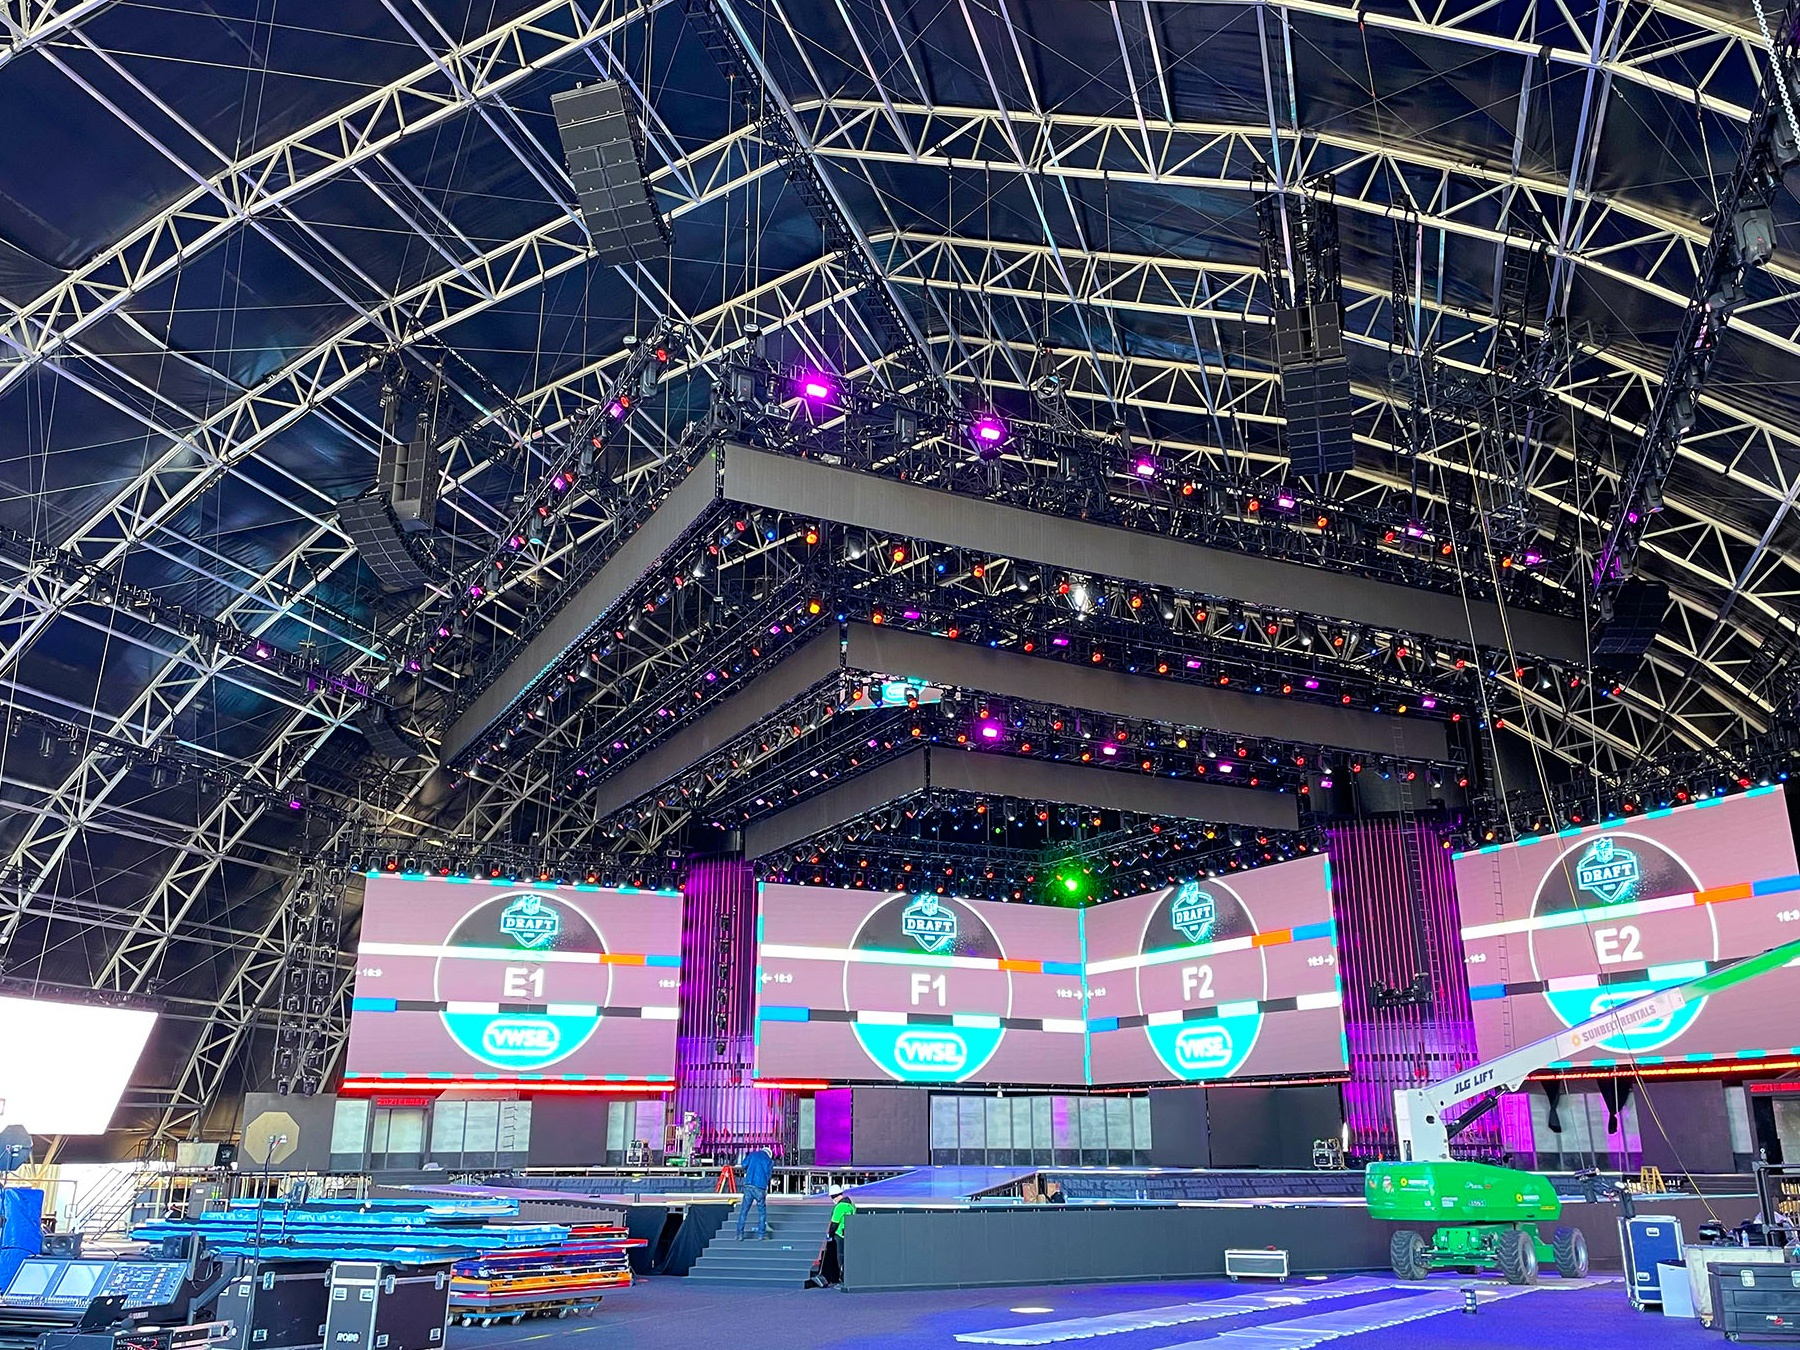 L-Acoustics K2 is First Round Pick for NFL Draft featured image